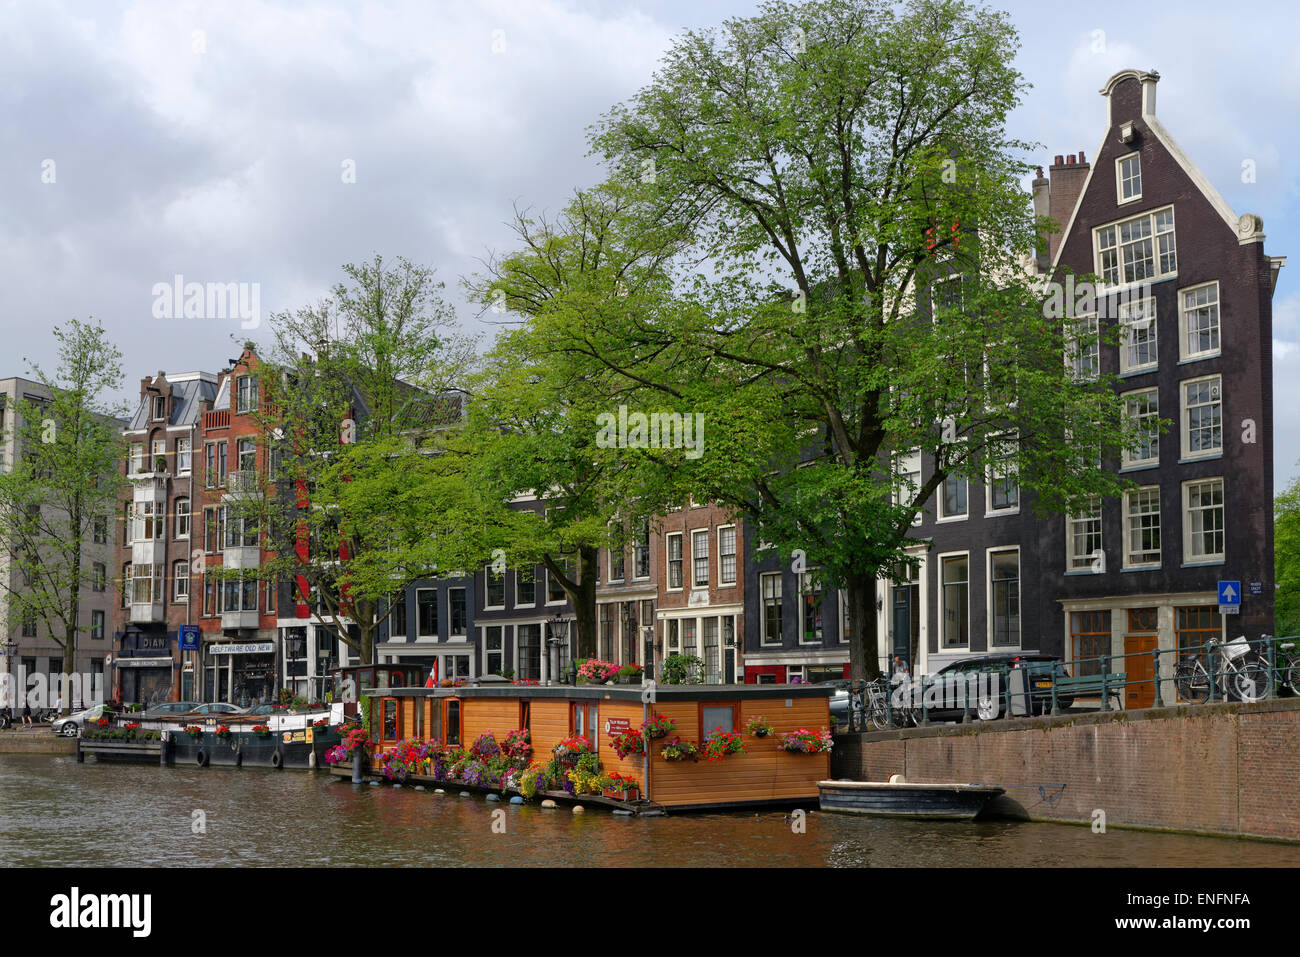 Houses on the Prinsengracht, historic centre along the canals, Amsterdam, The Netherlands - Stock Image